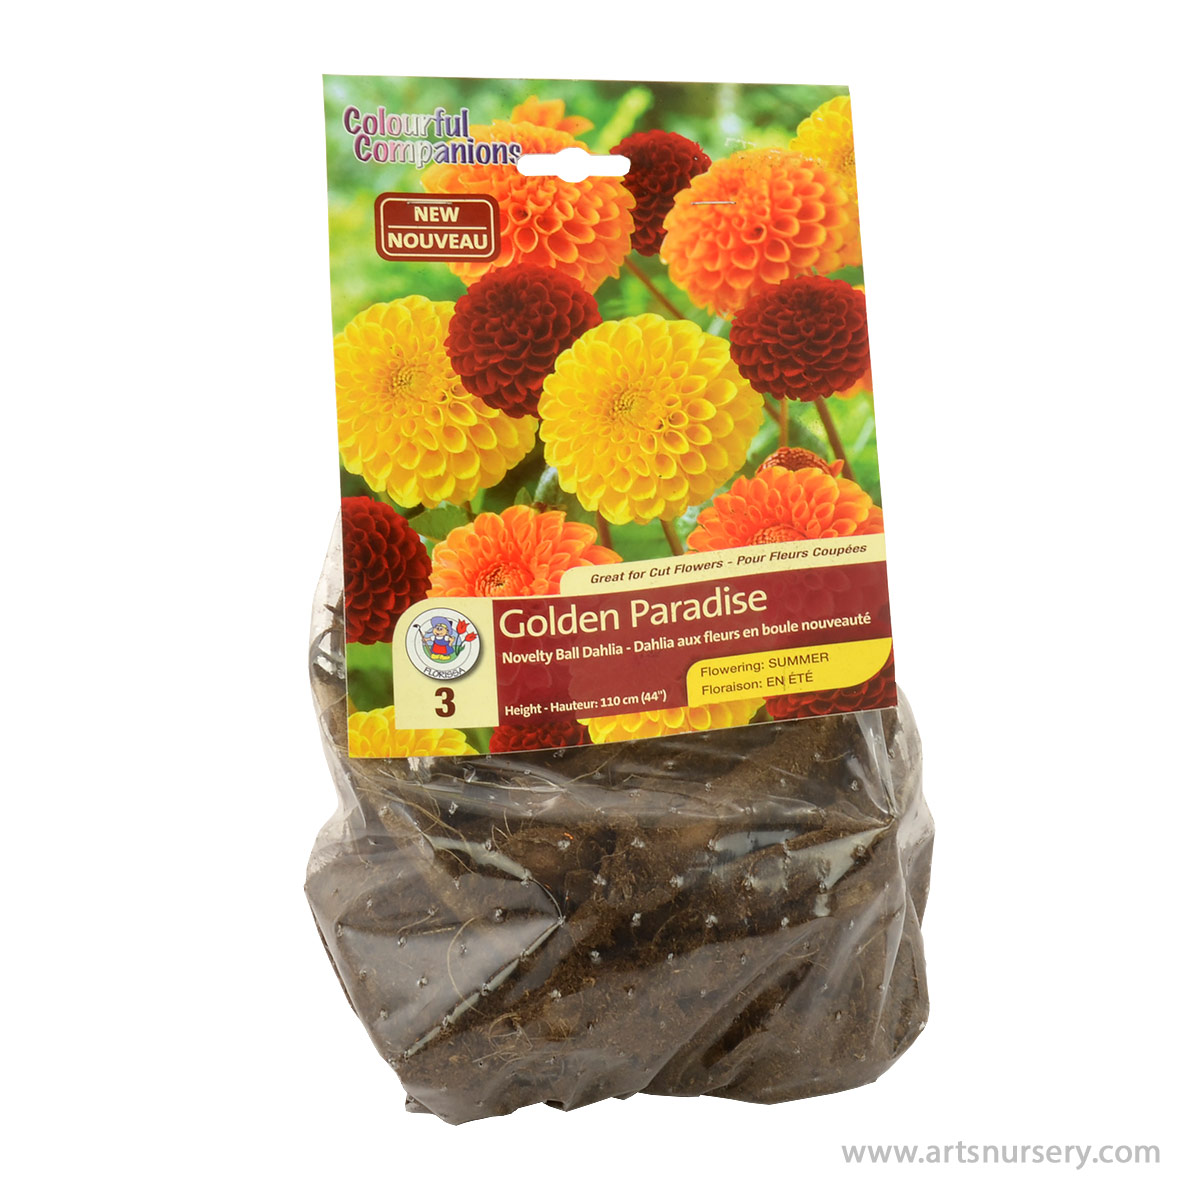 Dahlia Golden Paradise Colourful Companion Pack